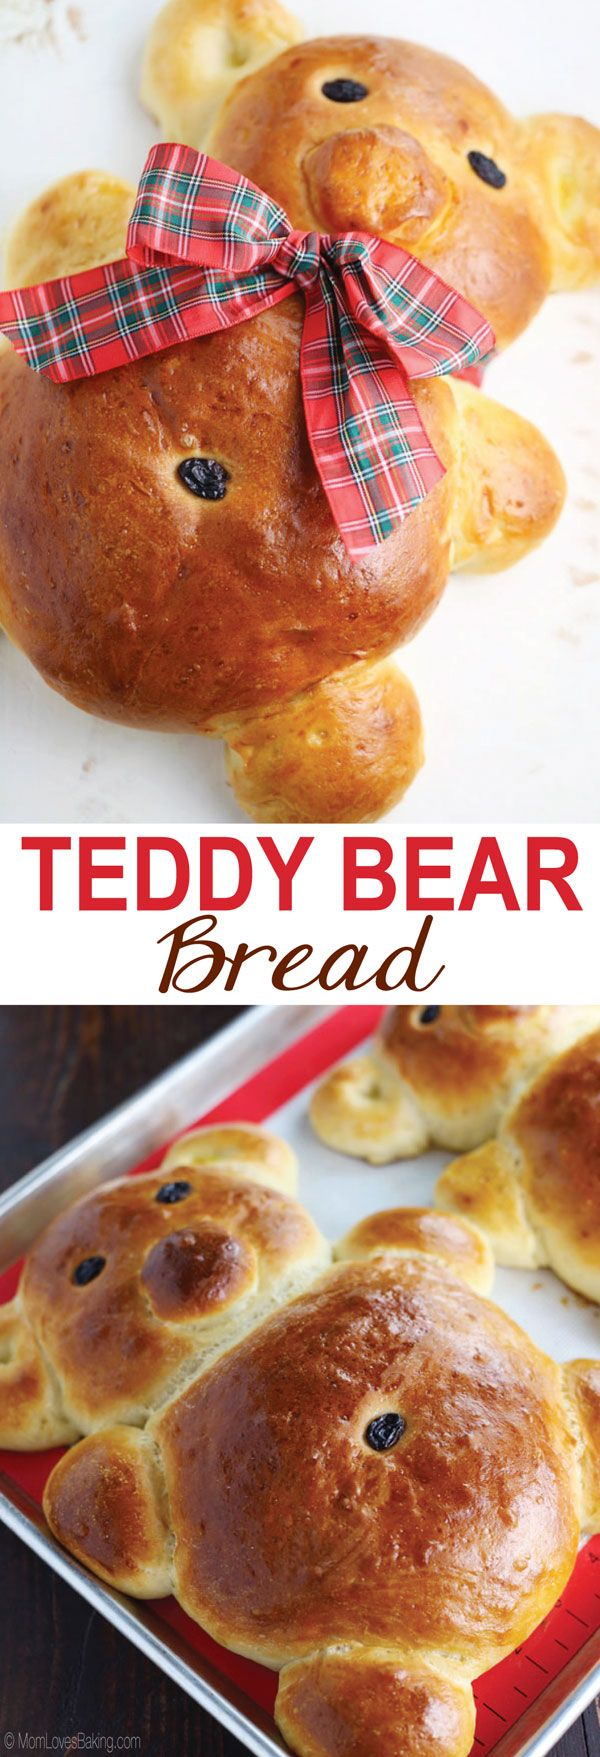 Teddy Bear Bread - Not only is it completely adorable, but it's also completely delicious! Find the recipe on http://MomLovesBaking.com